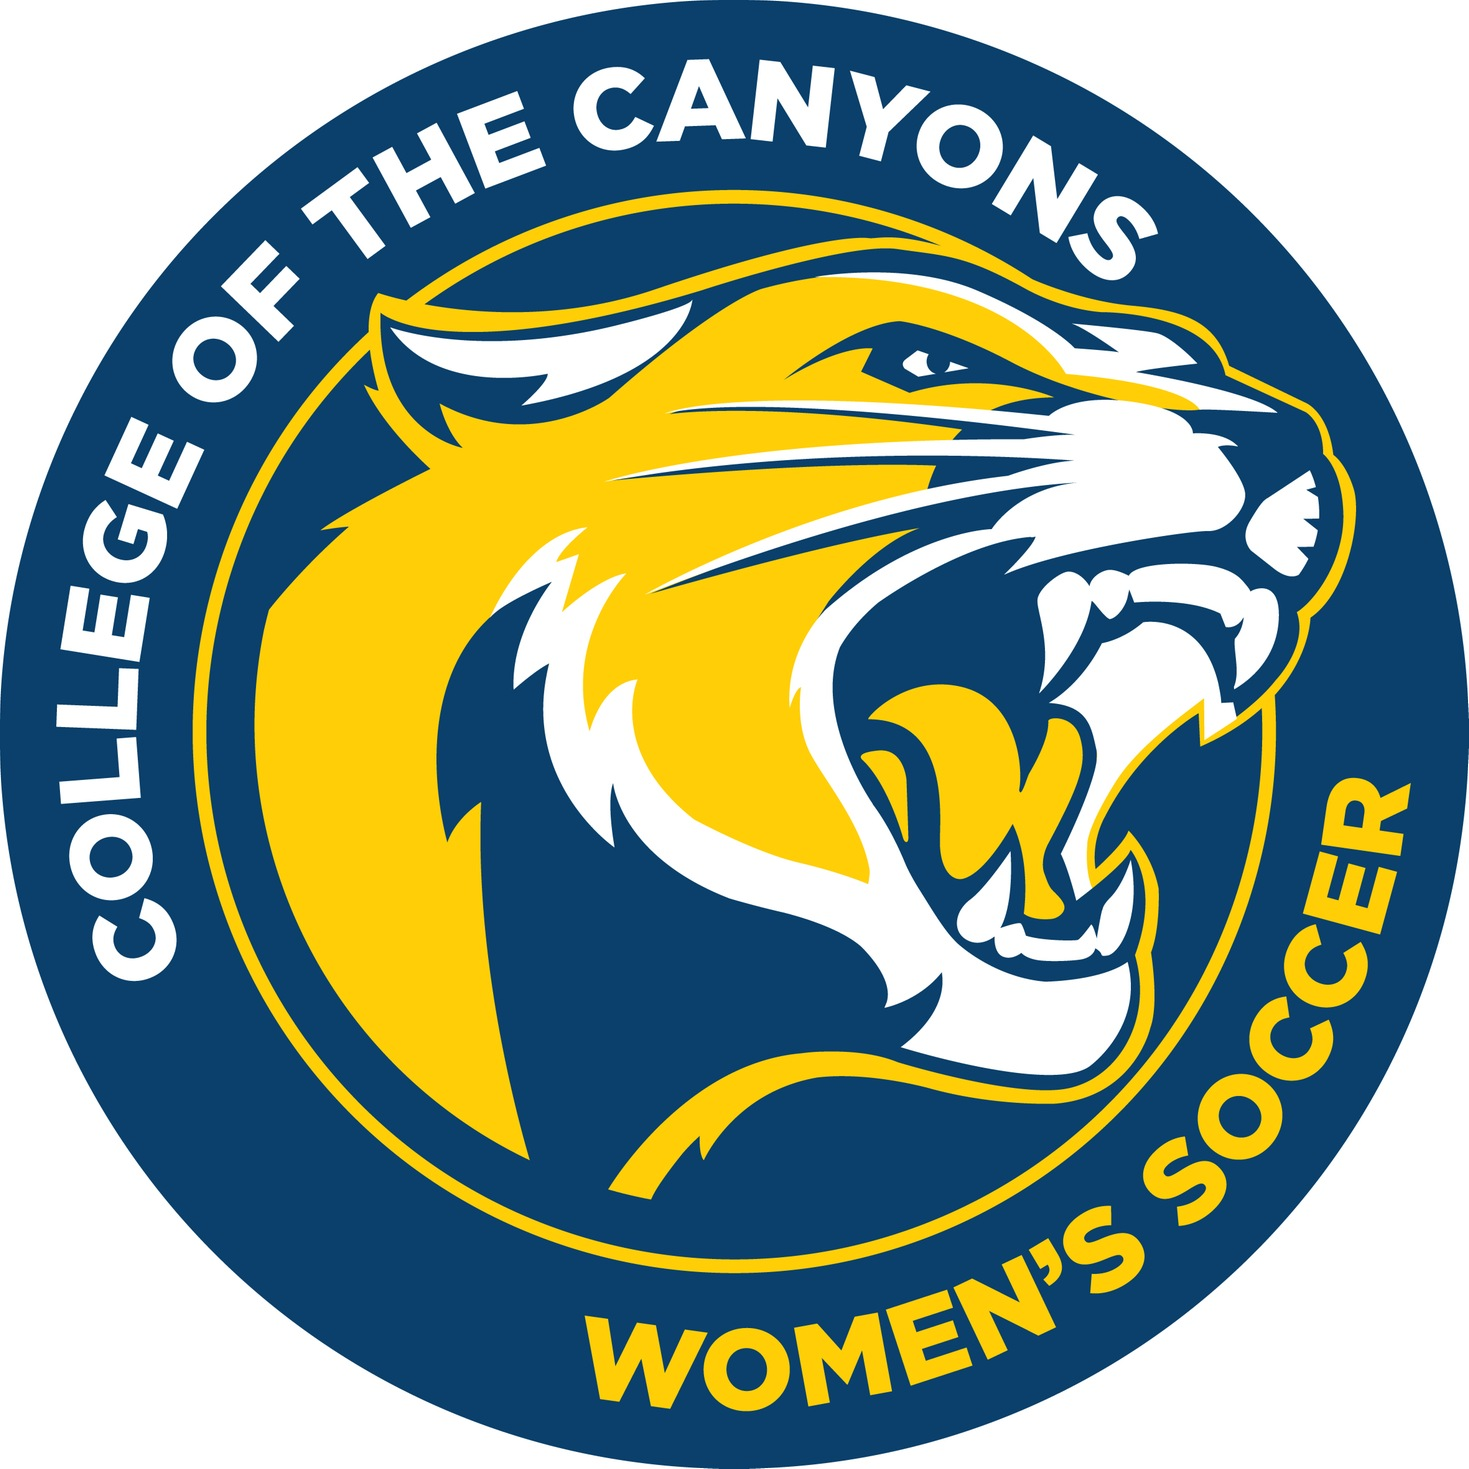 College of the Canyons women's soccer logo.